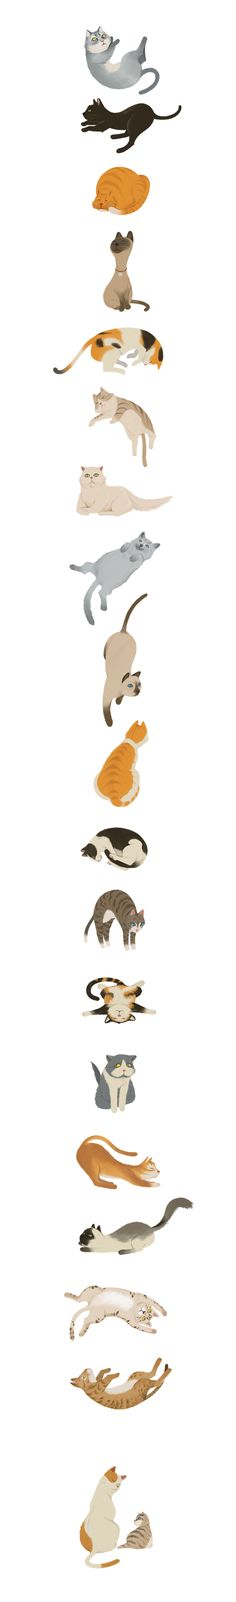 Cats by Wonho Jung, via Behance                                                                                                                                                                                 More